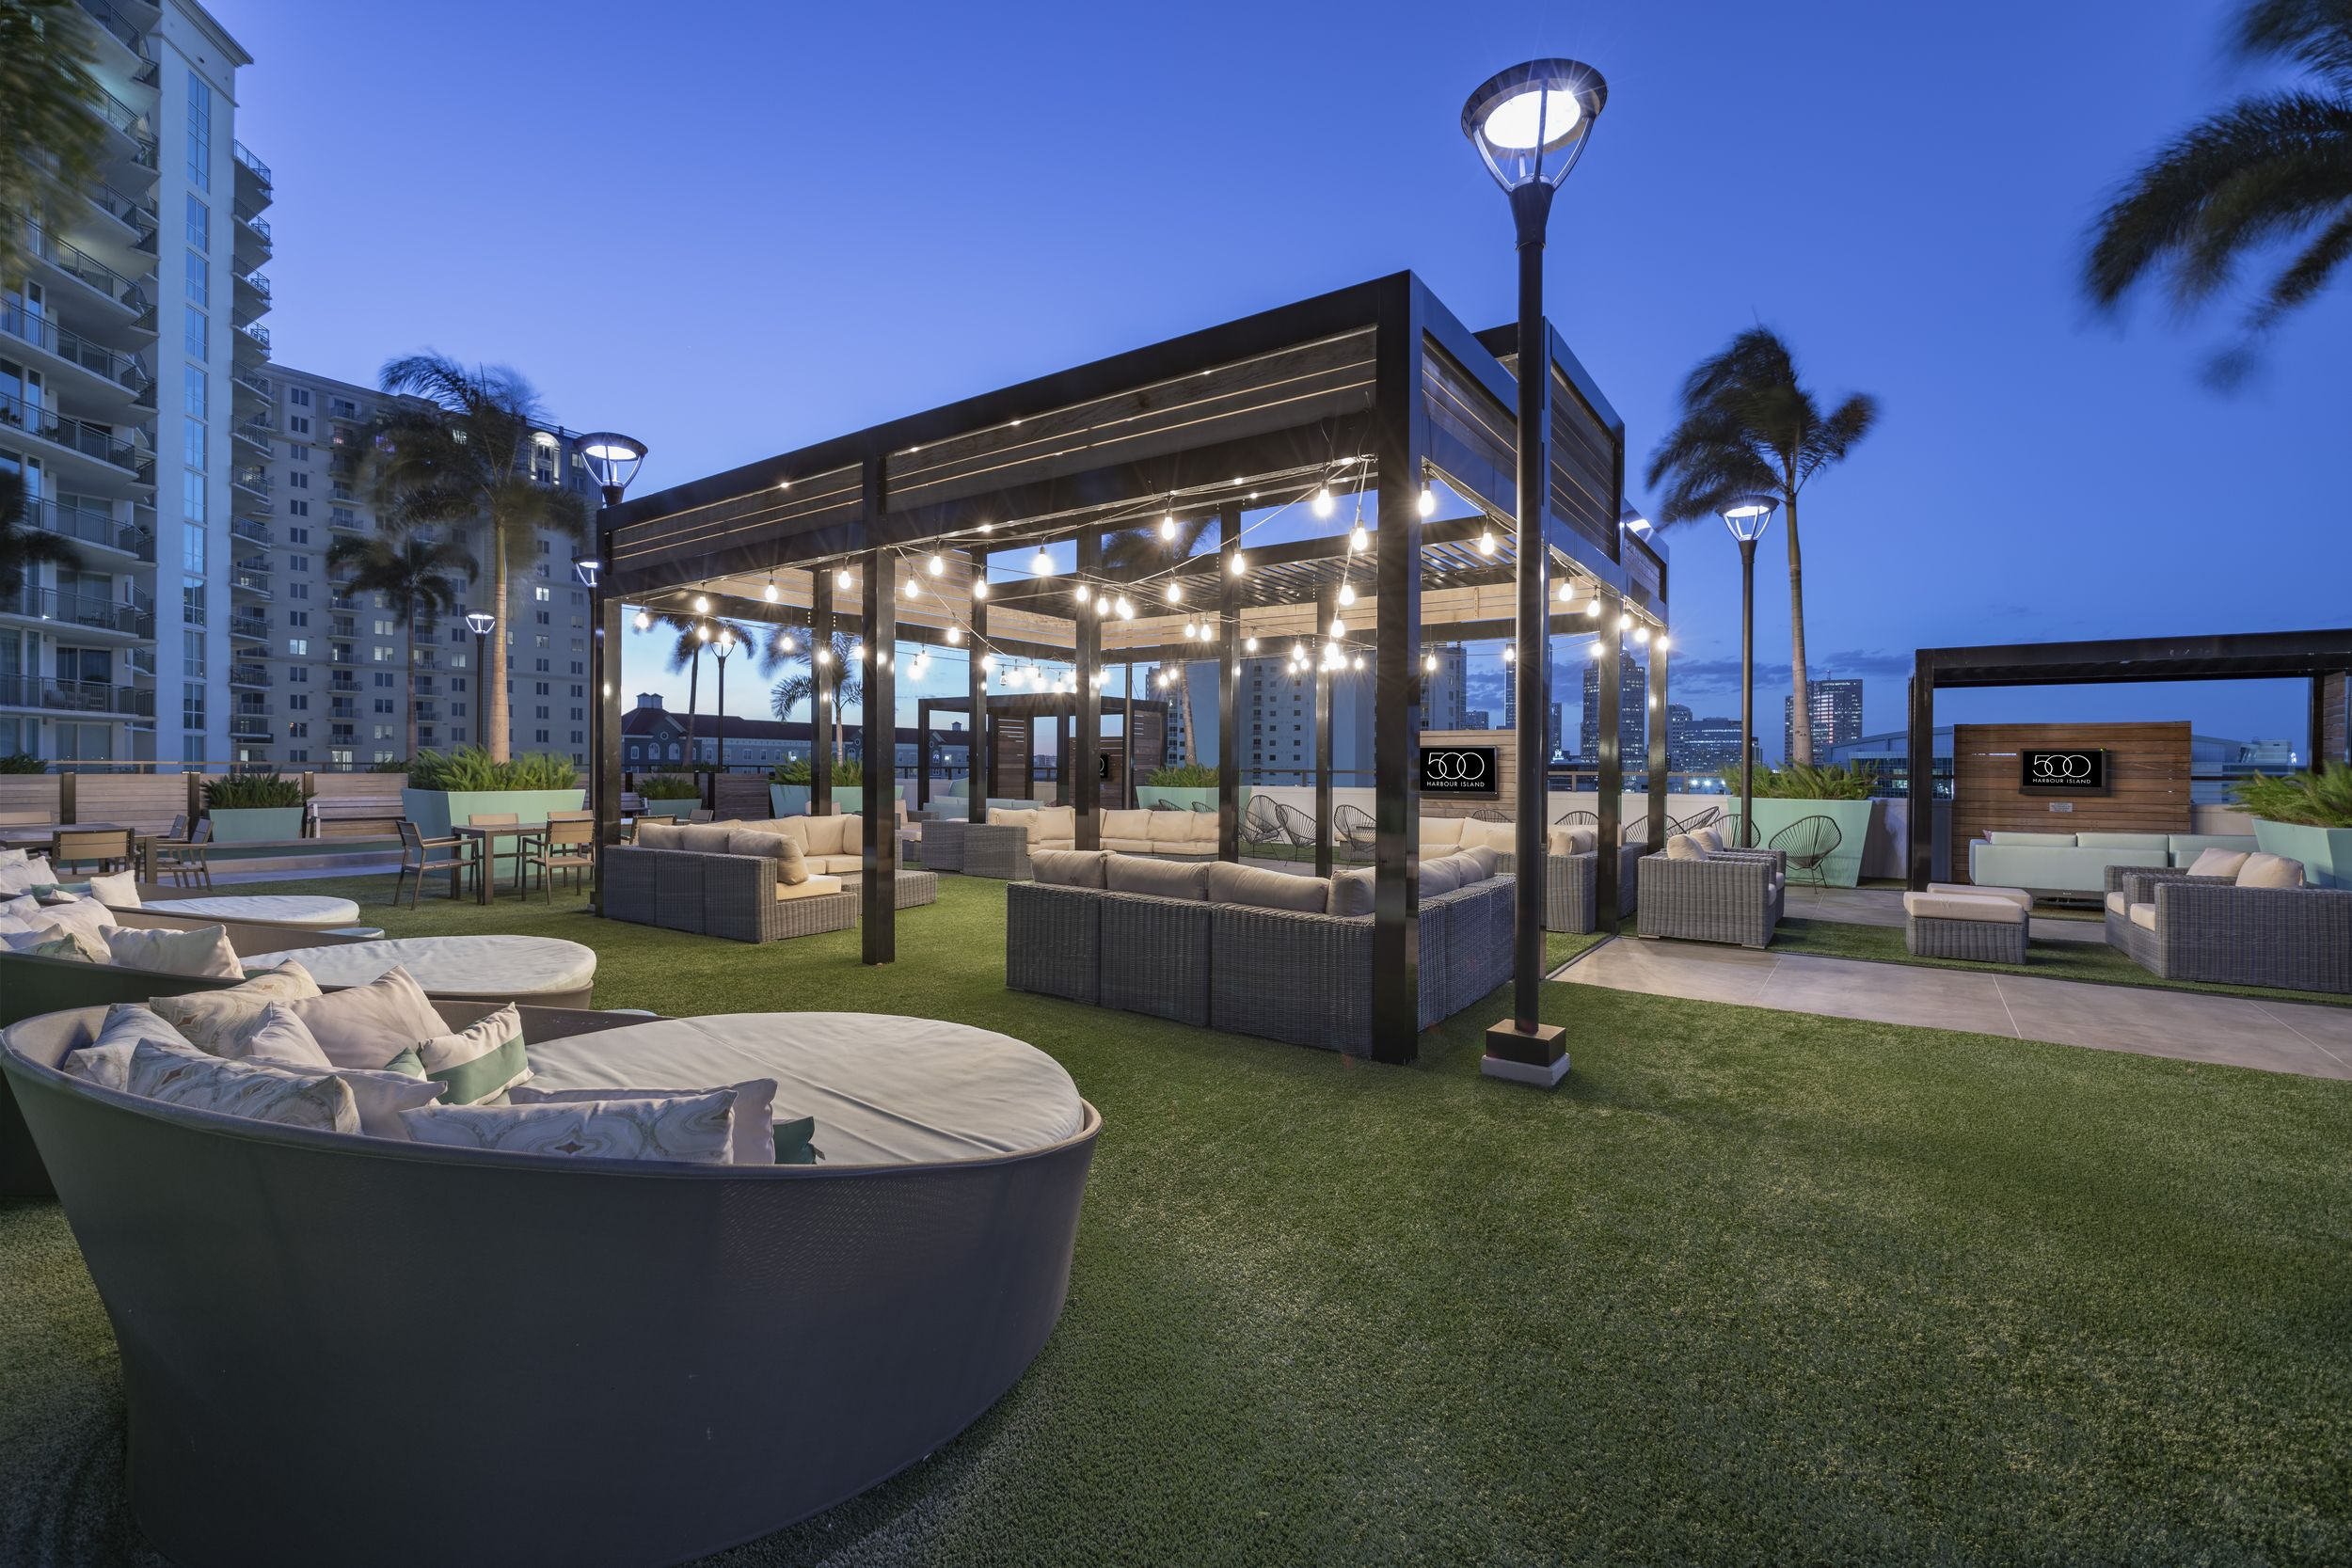 Outdoor rooftop area with seating and entertainment areas